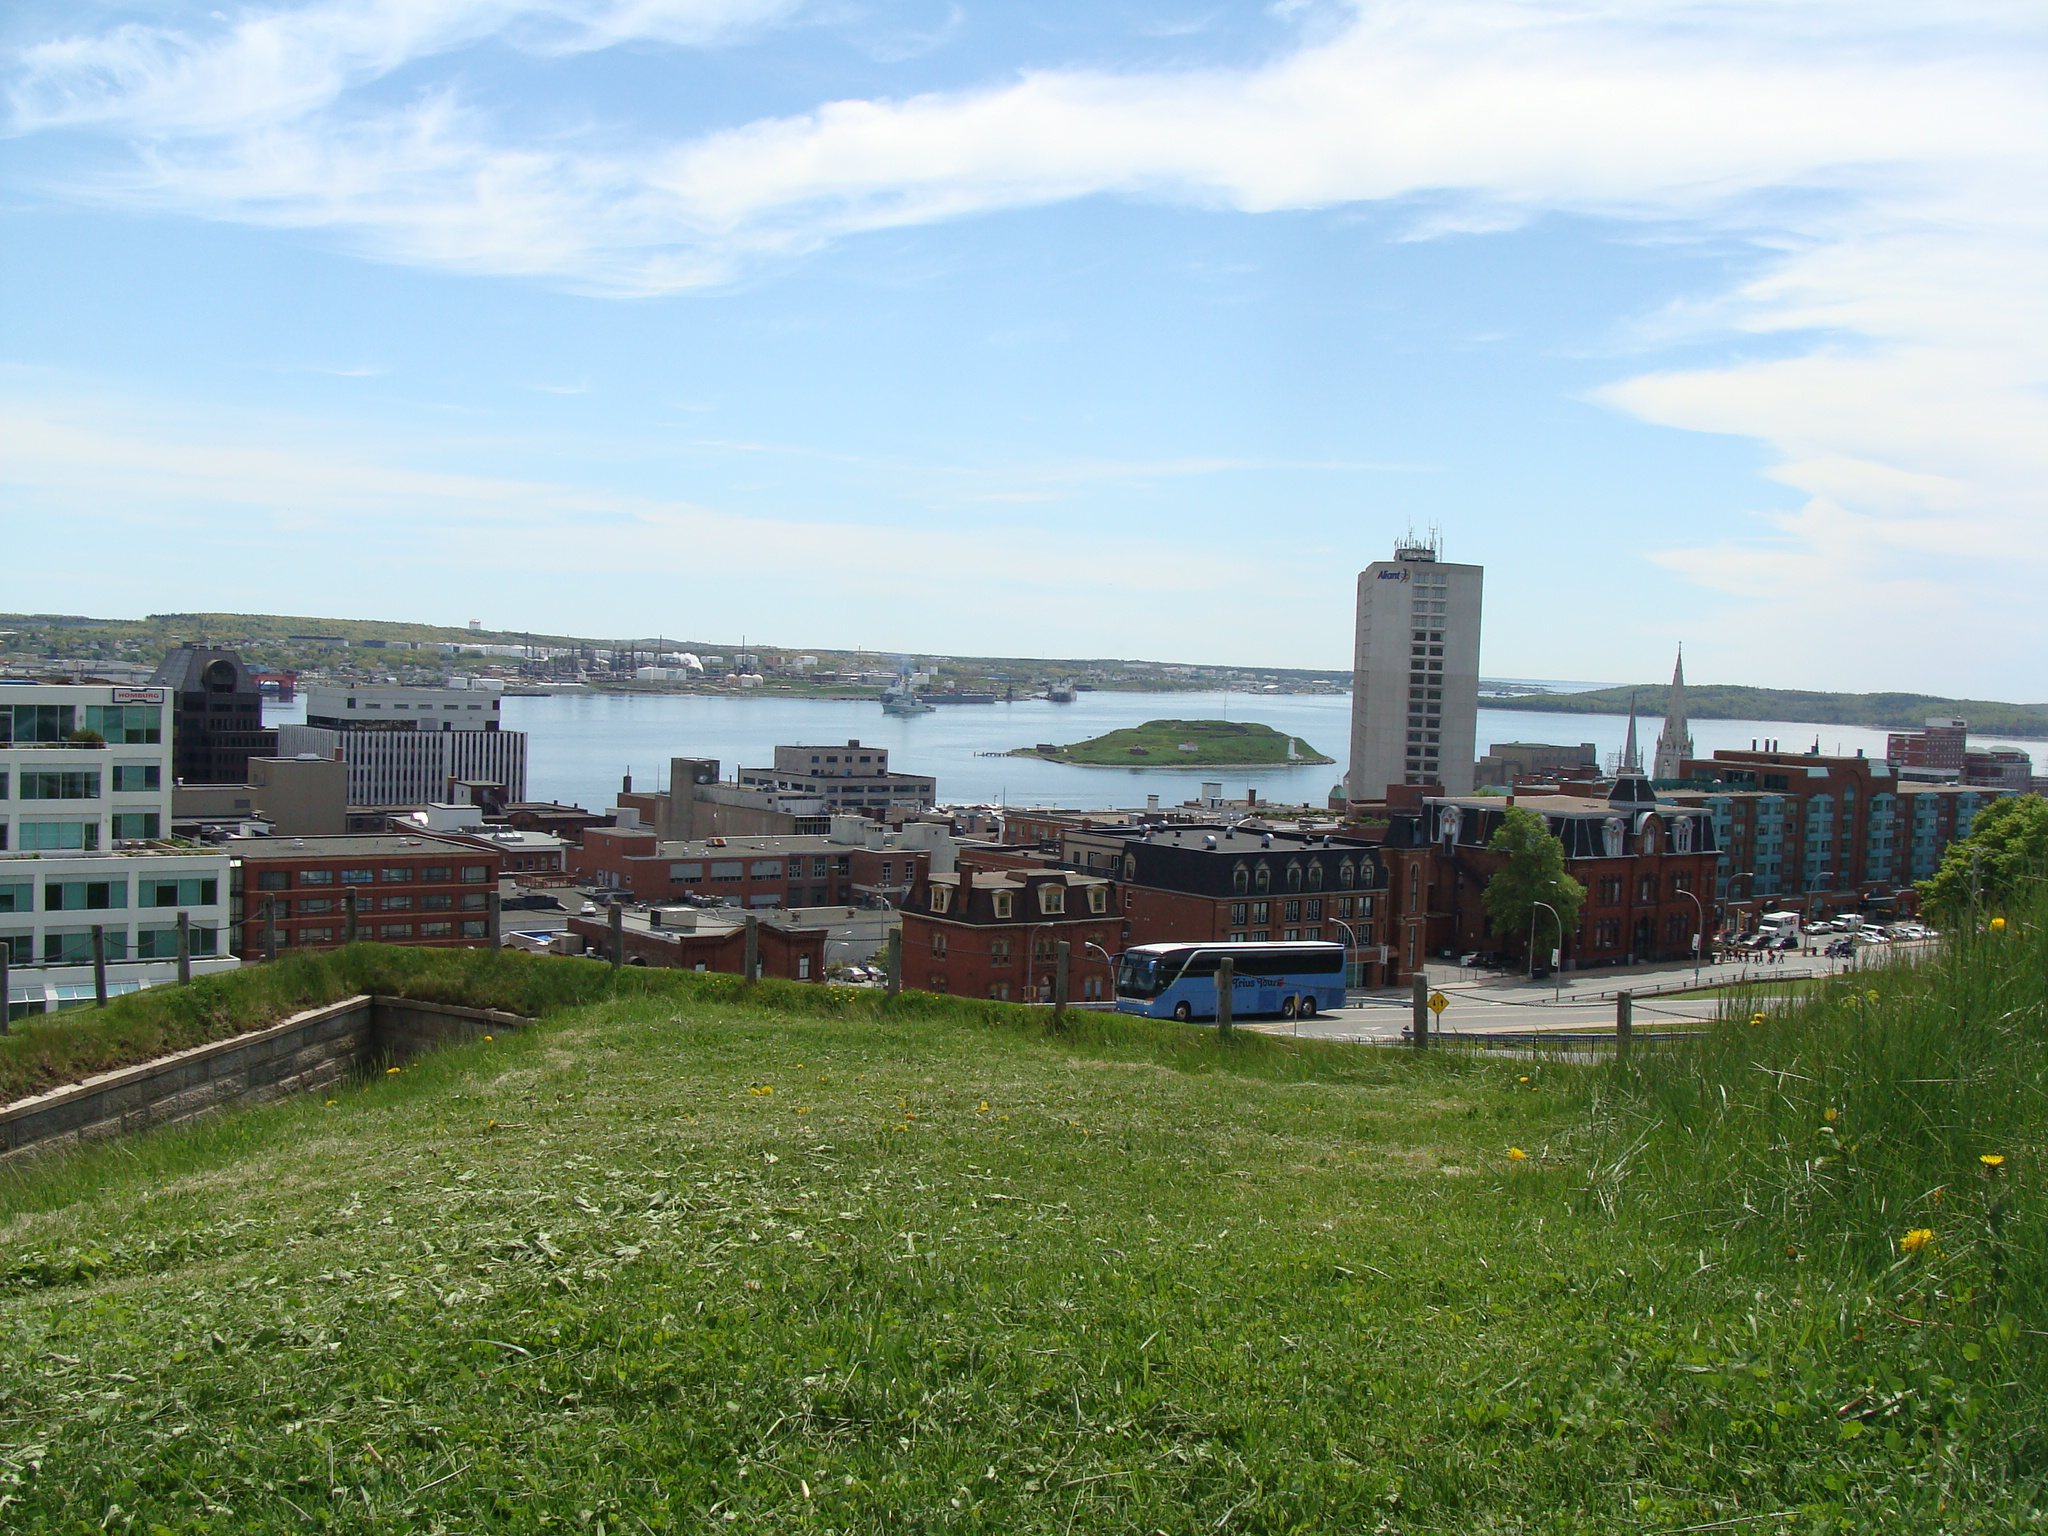 [PH] at CITADEL, Halifax, Canada, 20080606